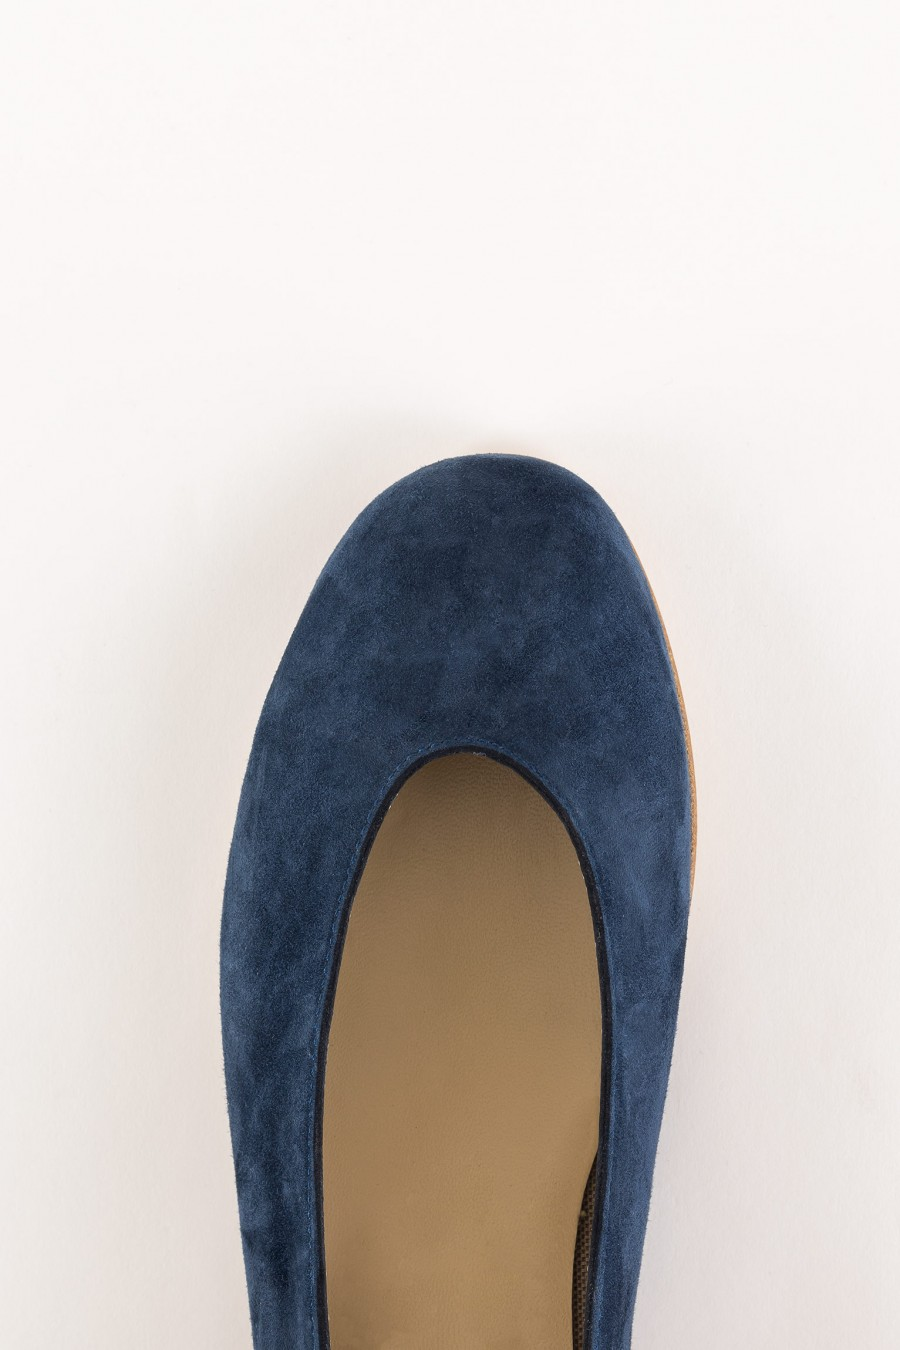 blue suede rounded shoes